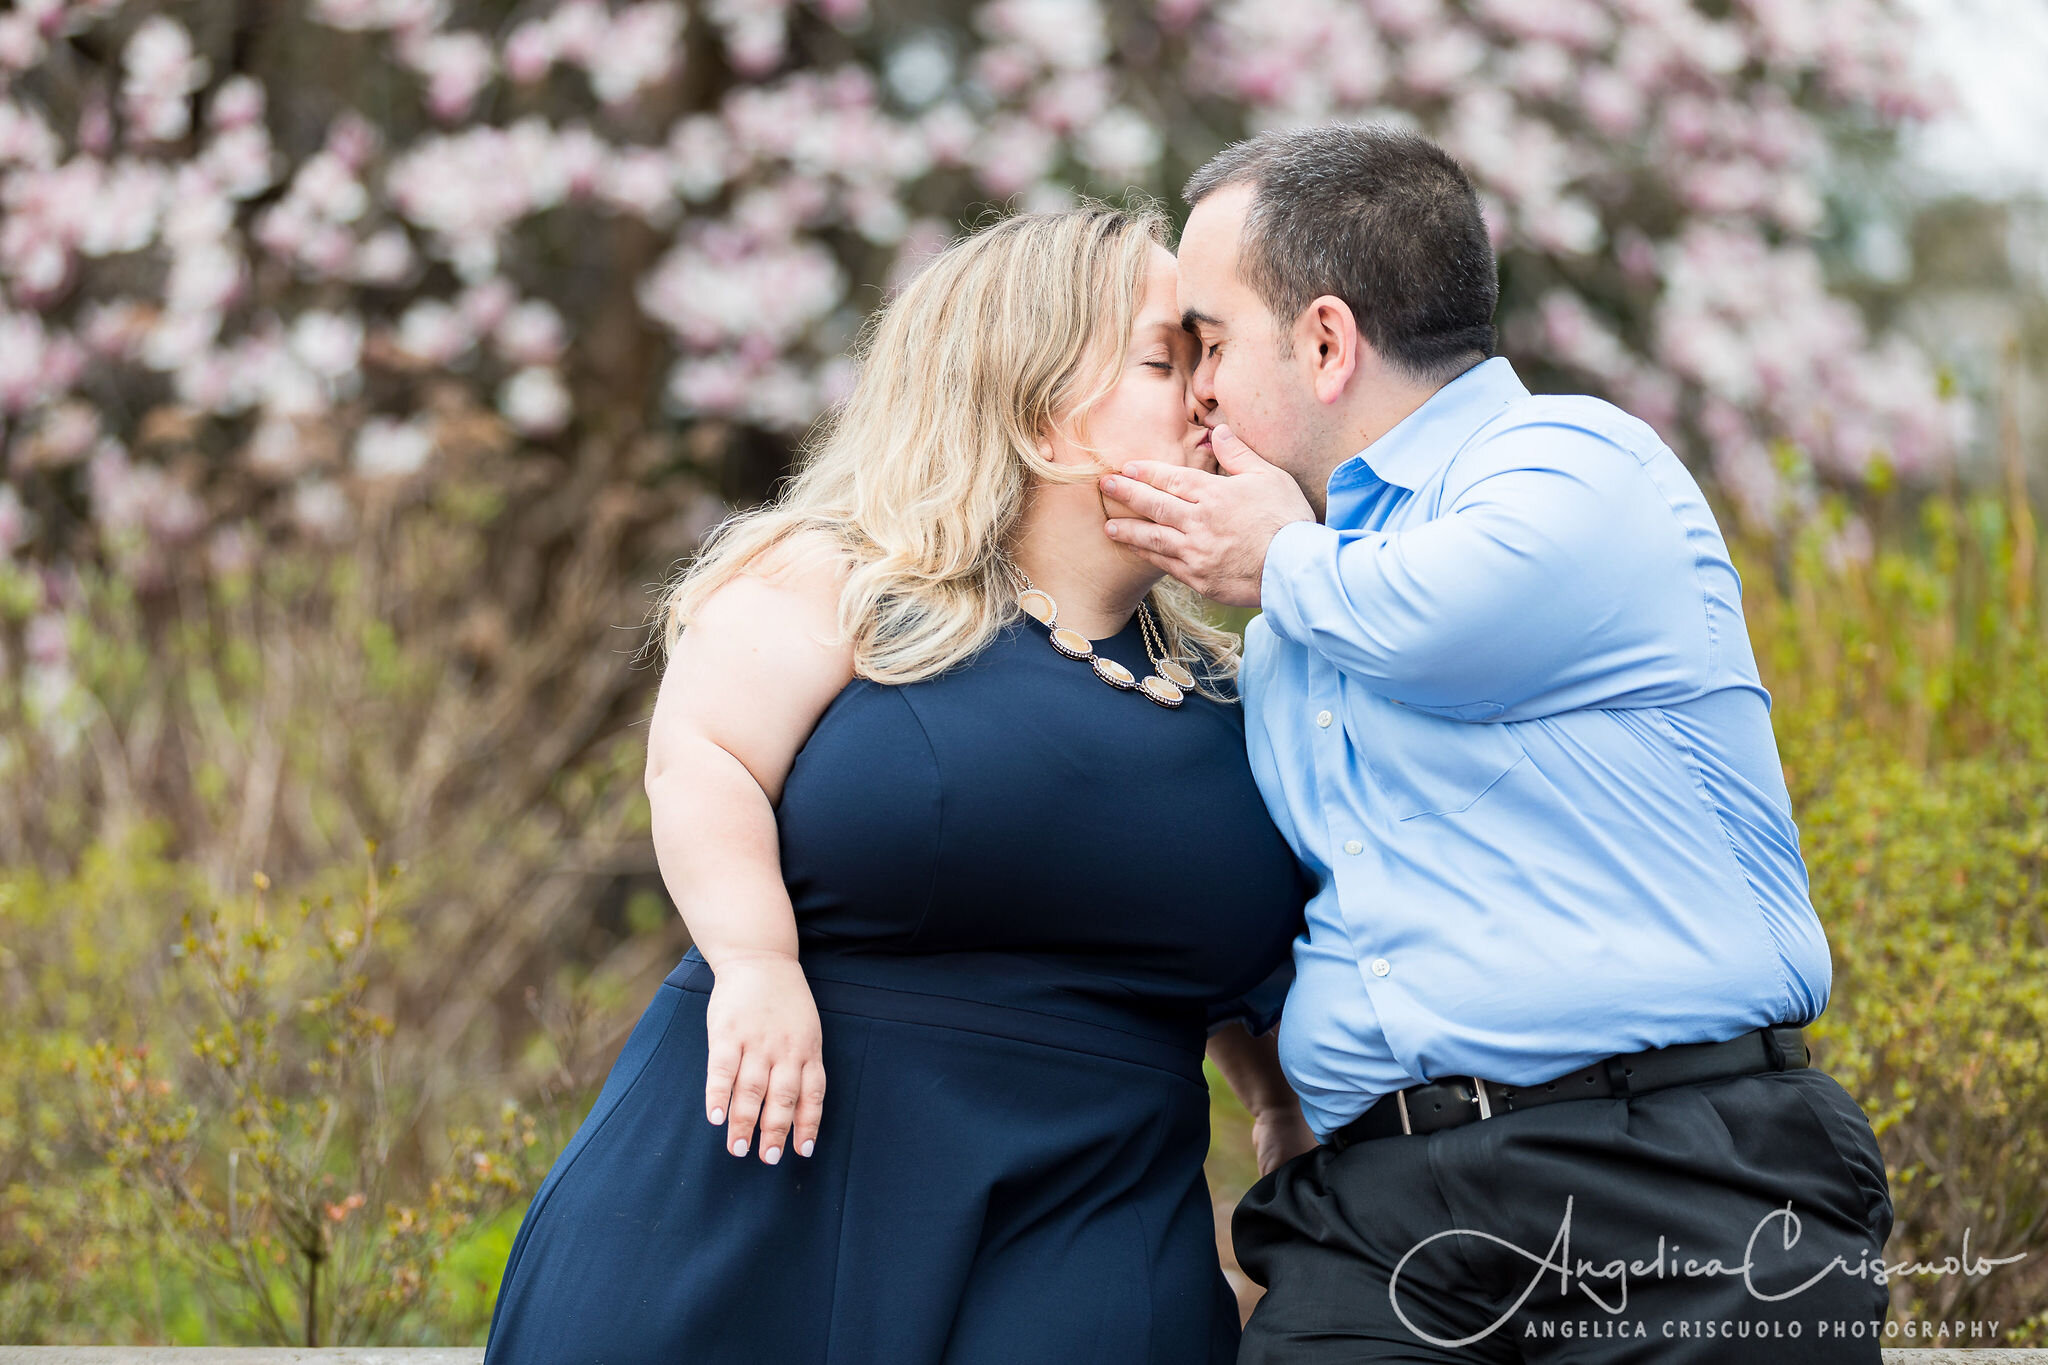 New York Central Park Engagement Wedding Photos - Cherry Blossoms ©2019 Angelica Criscuolo Photography | All Rights Reserved | www.AngelicaCriscuoloPhotography.com | www.facebook.com/AngelicaCriscuoloPhotography